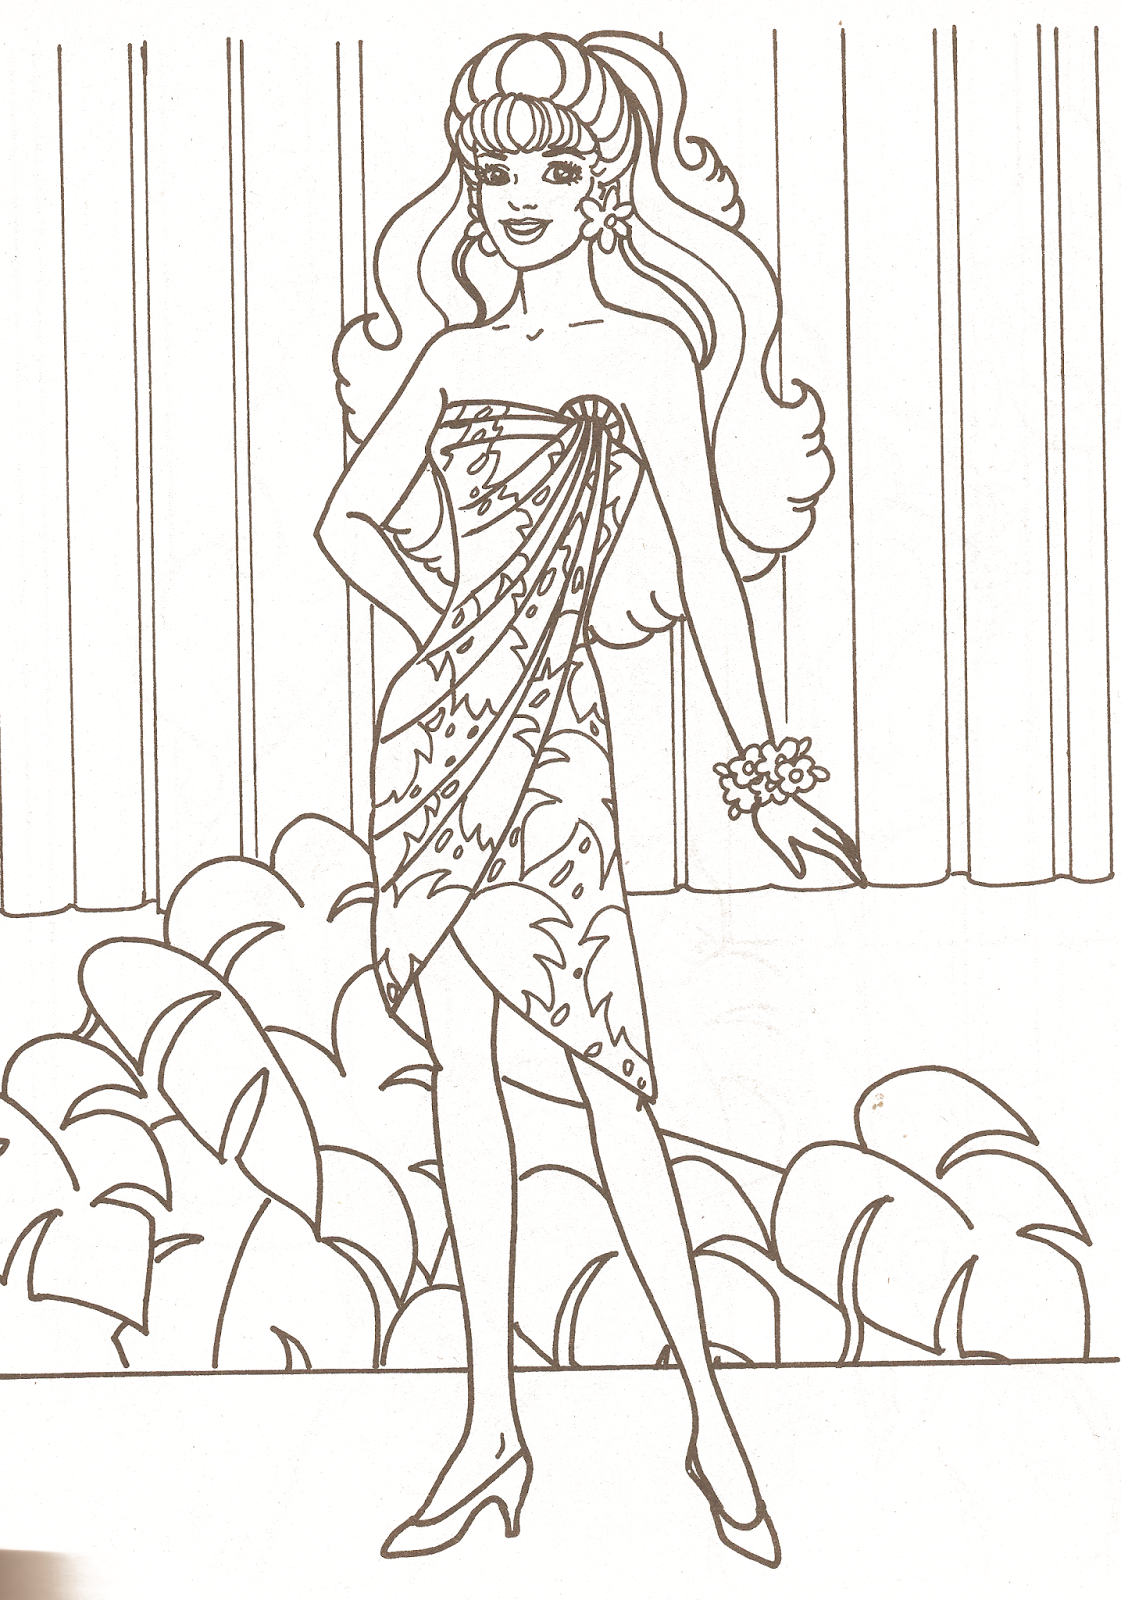 Miss Missy Paper Dolls Barbie Coloring Pages Part 1 In 2021 Barbie Coloring Pages Barbie Coloring Coloring Pages